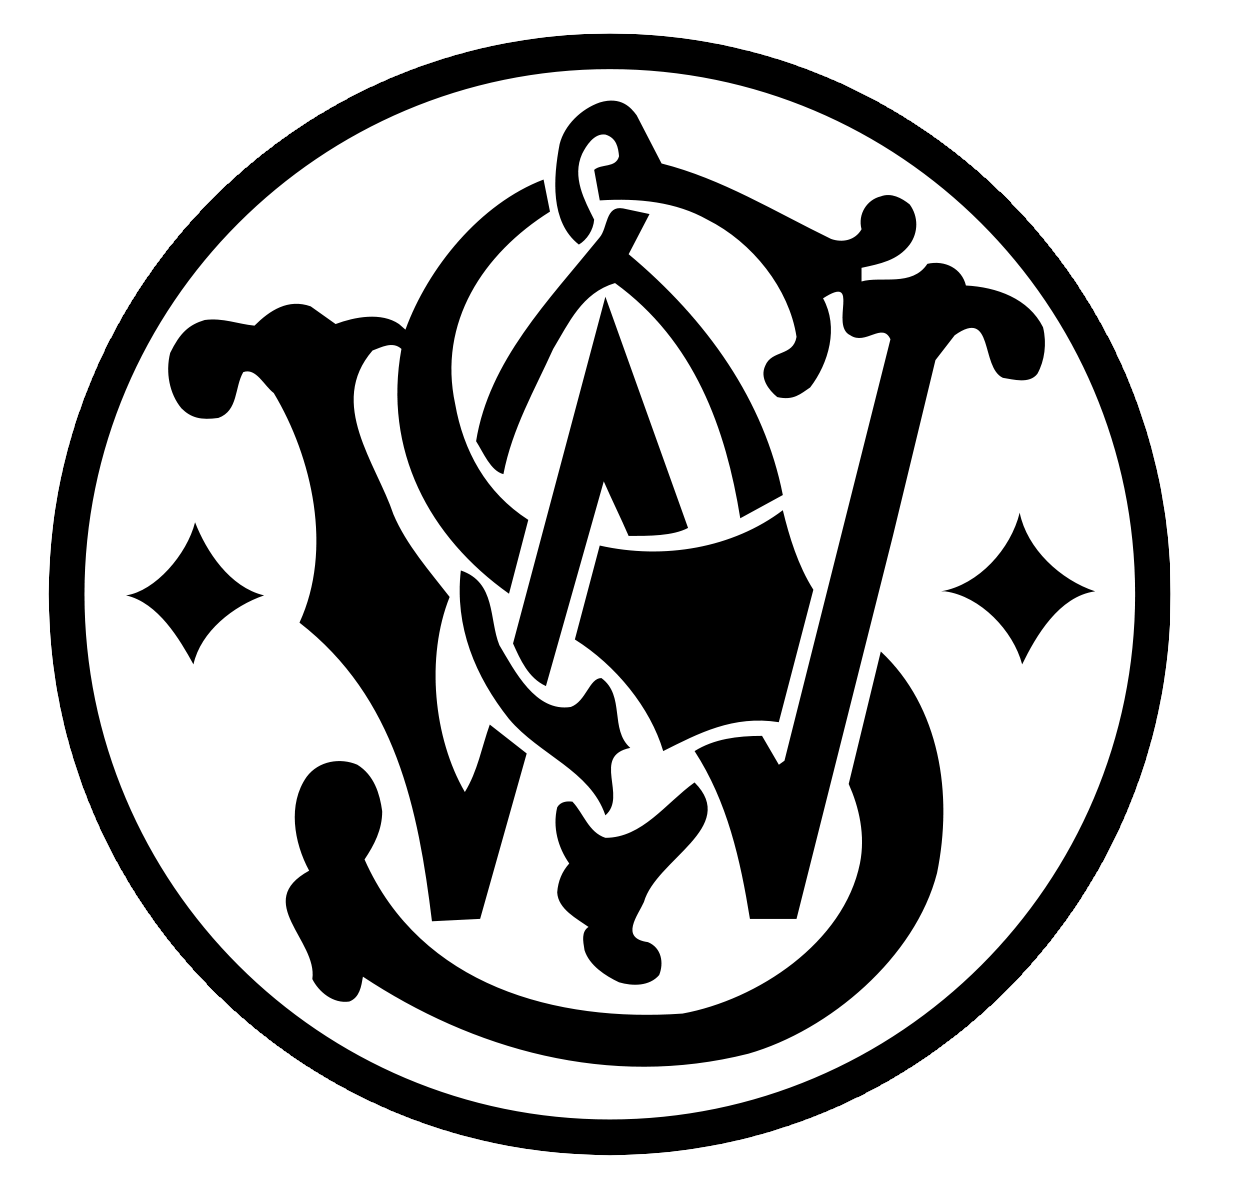 Smith & wesson logo png. Fallout wiki fandom powered